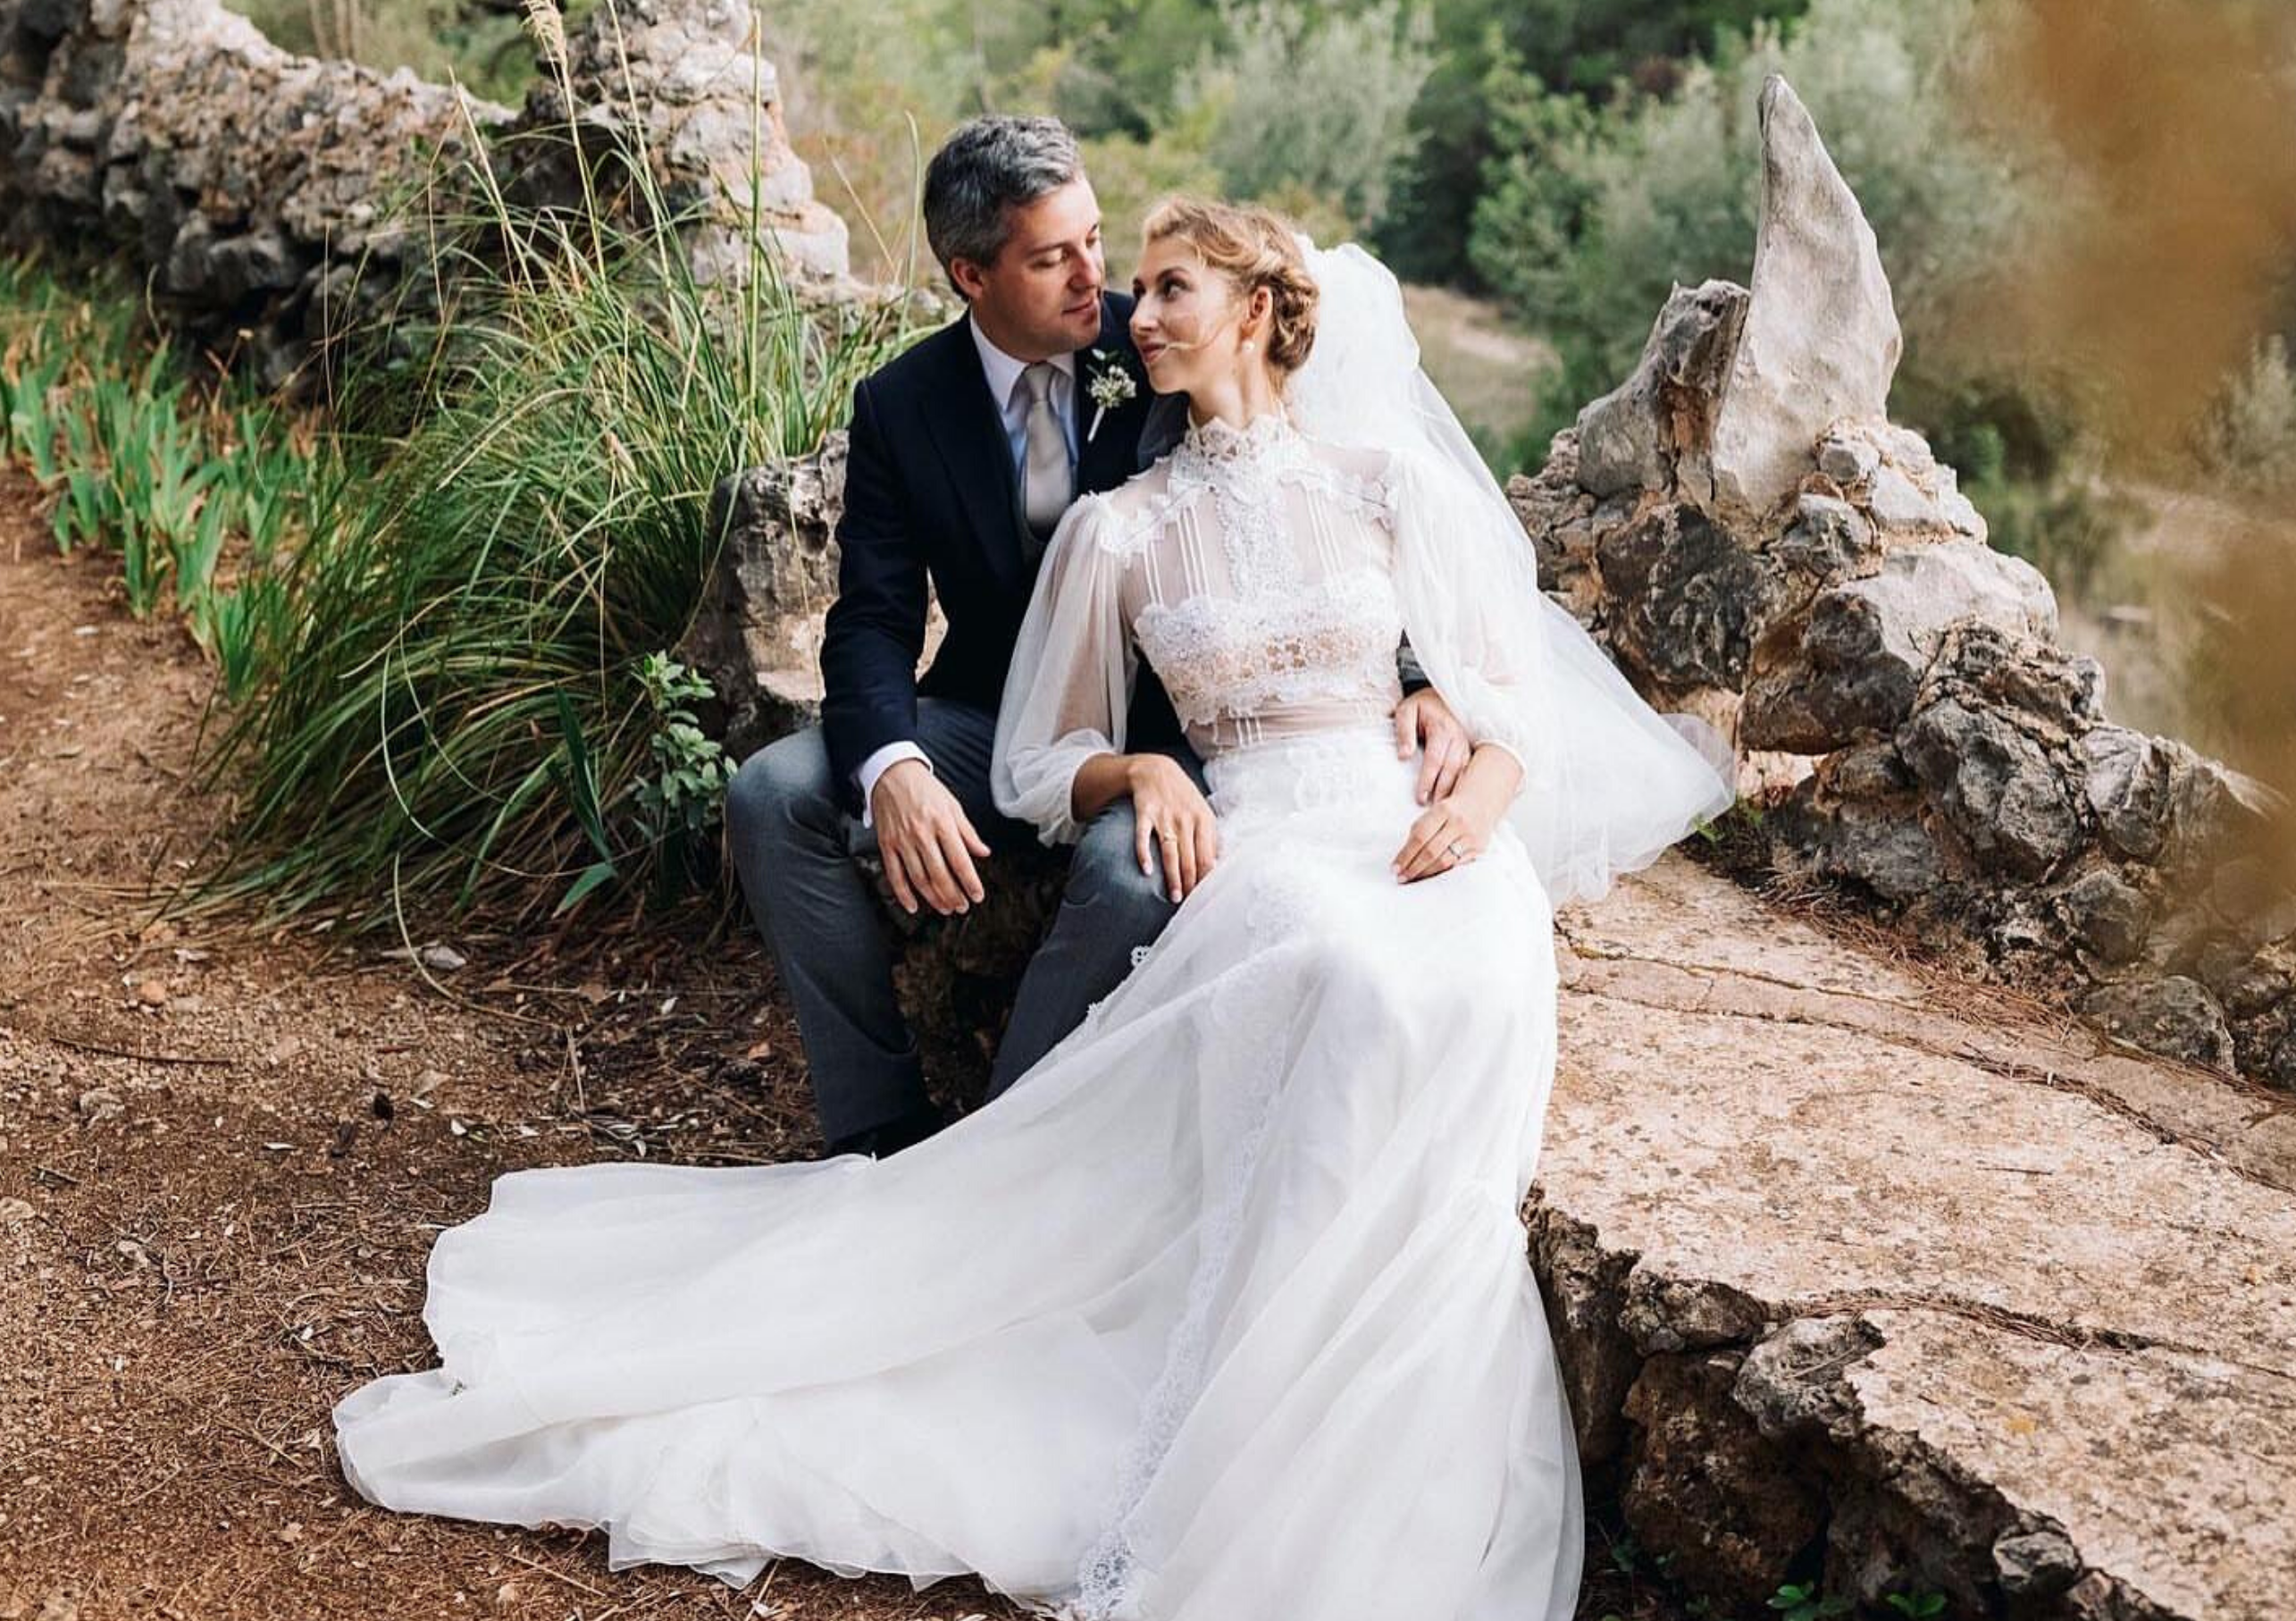 La elegante pareja Masha y Henri Peugeot, y su mágica boda de tres días en Mallorca / The elegant couple Masha and Henri Peugeot and their magical three-day wedding in Mallorca